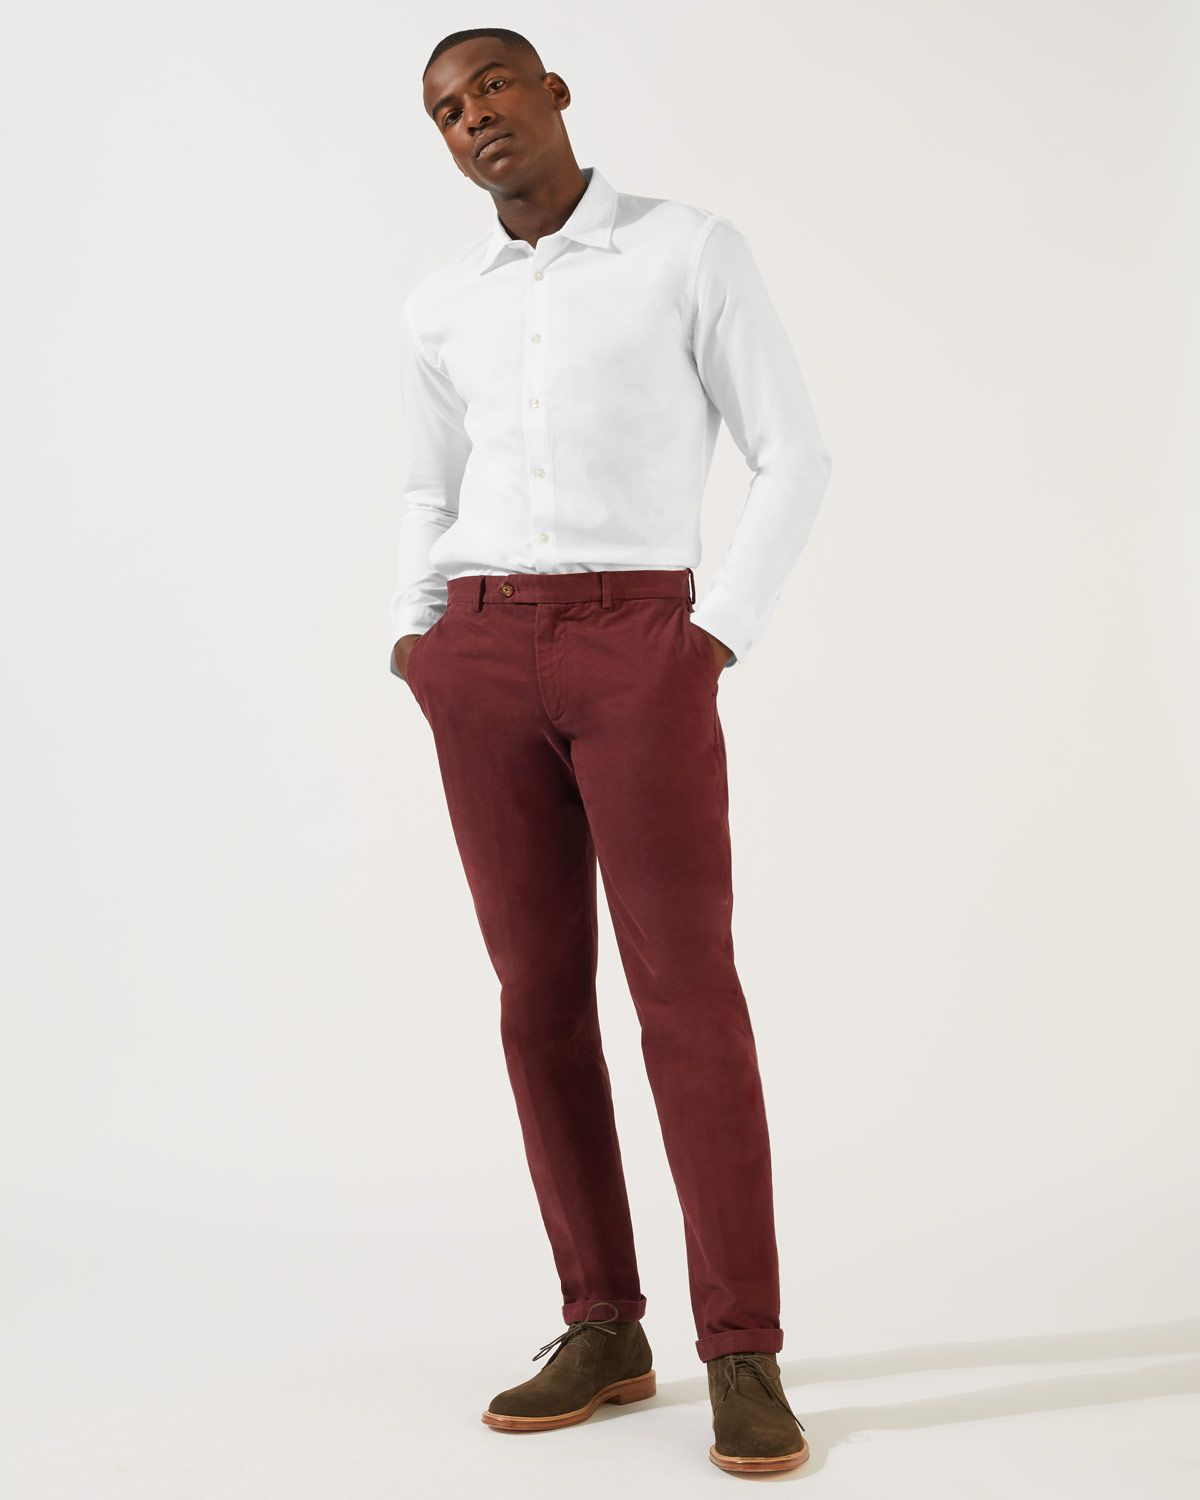 Piper Garment Dye Chino Trouser